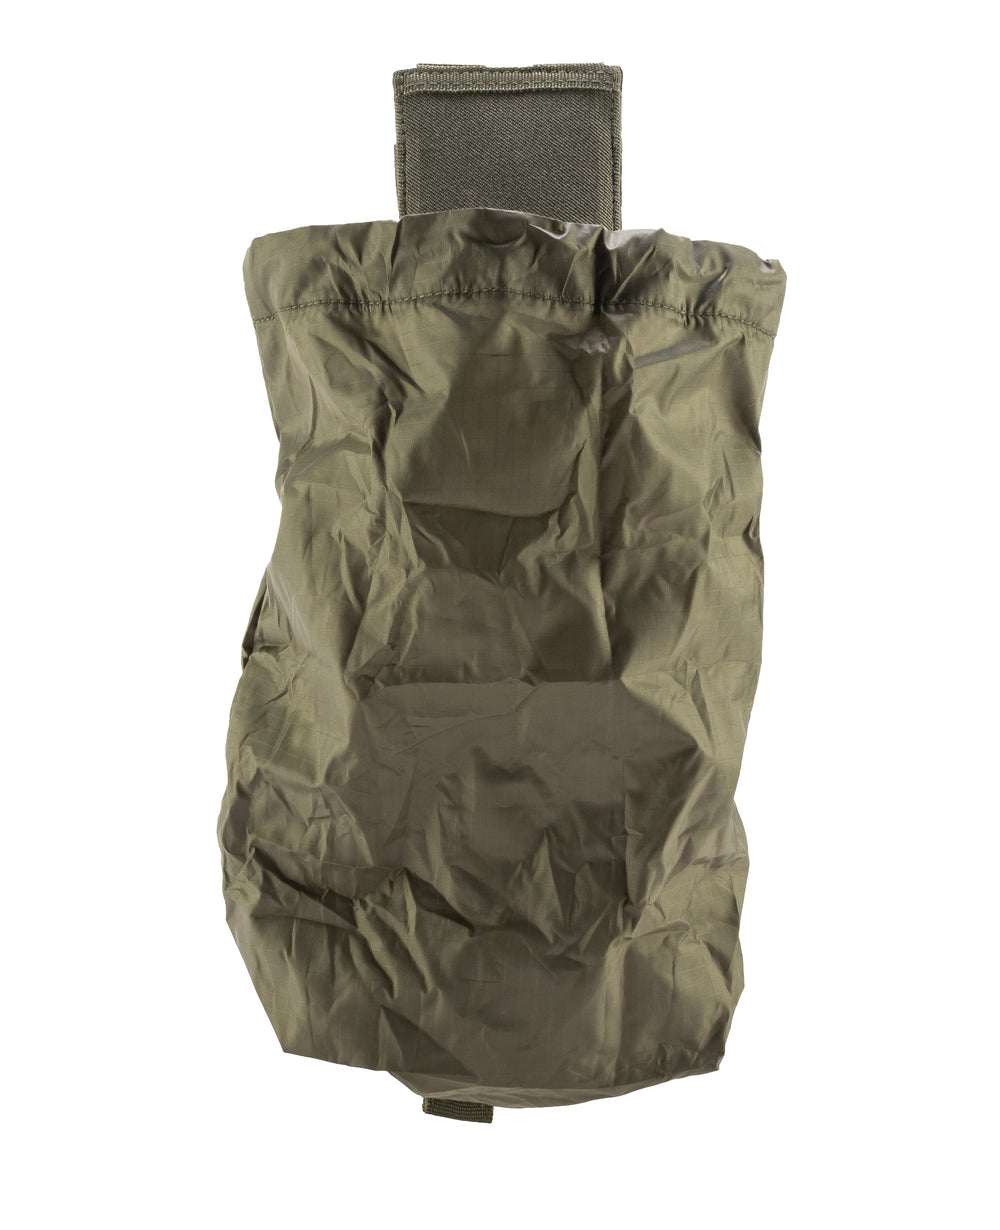 Viper Tactical VX Stuffa Dump Bag